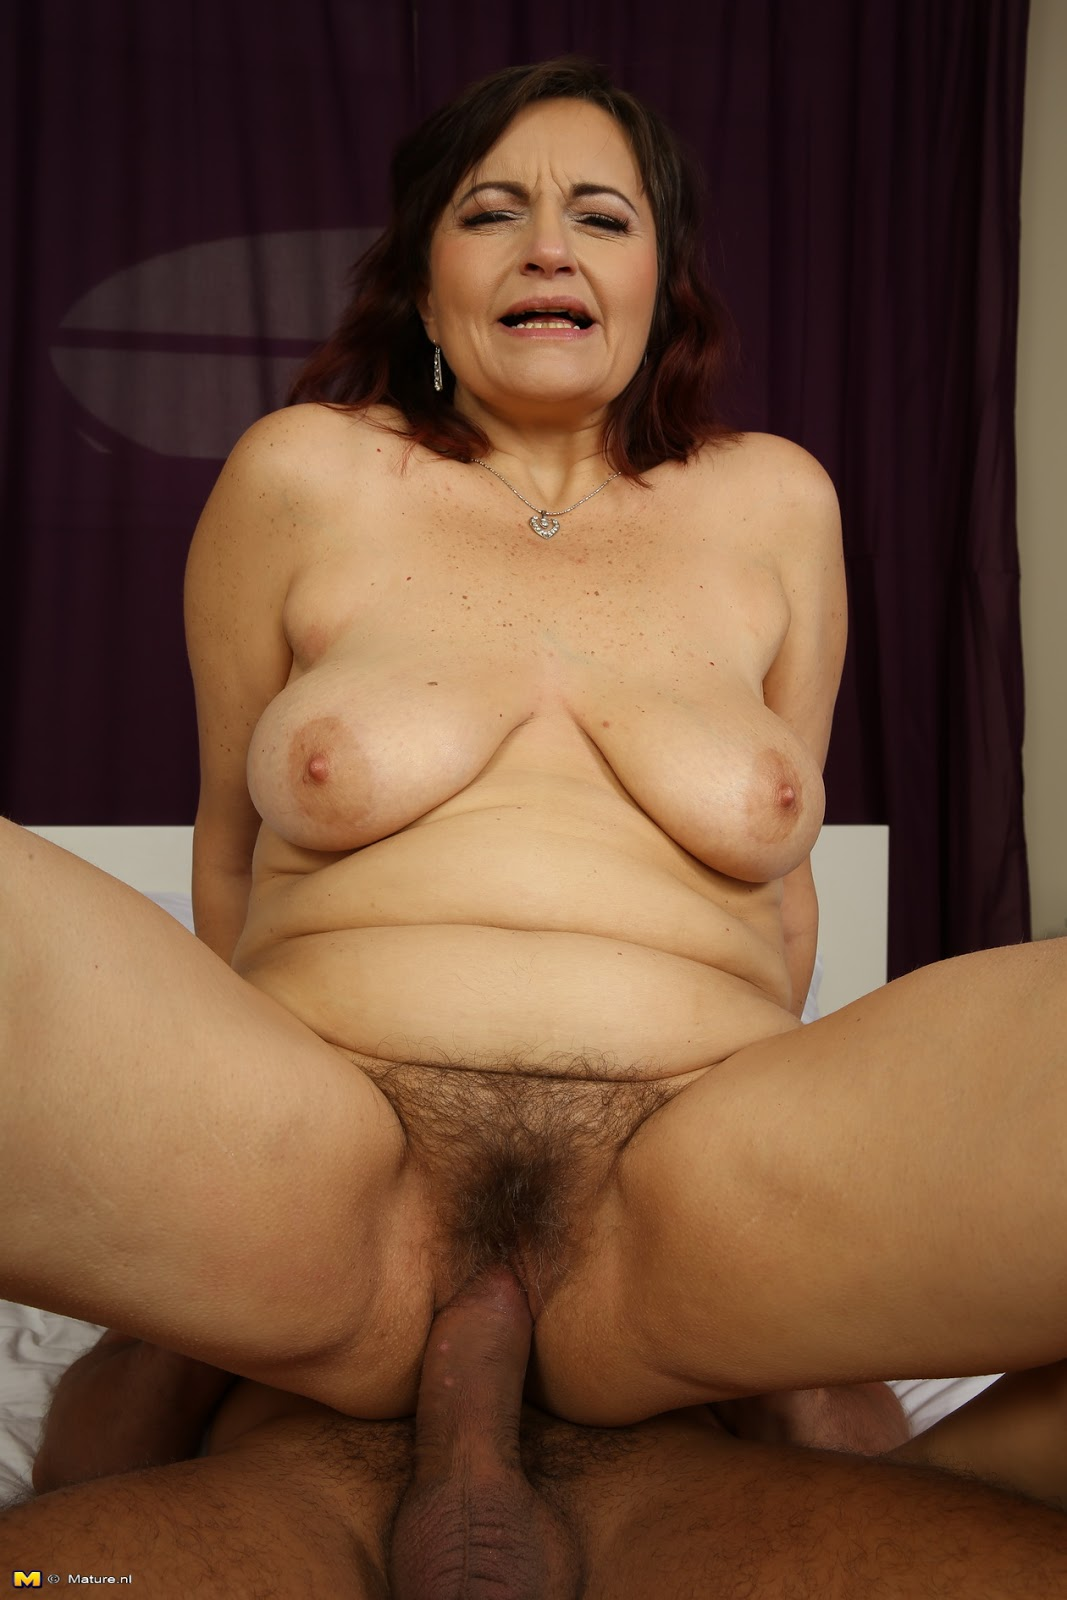 Hairy Mature Women Sex Orgasm - Video Sex Hairy Sex